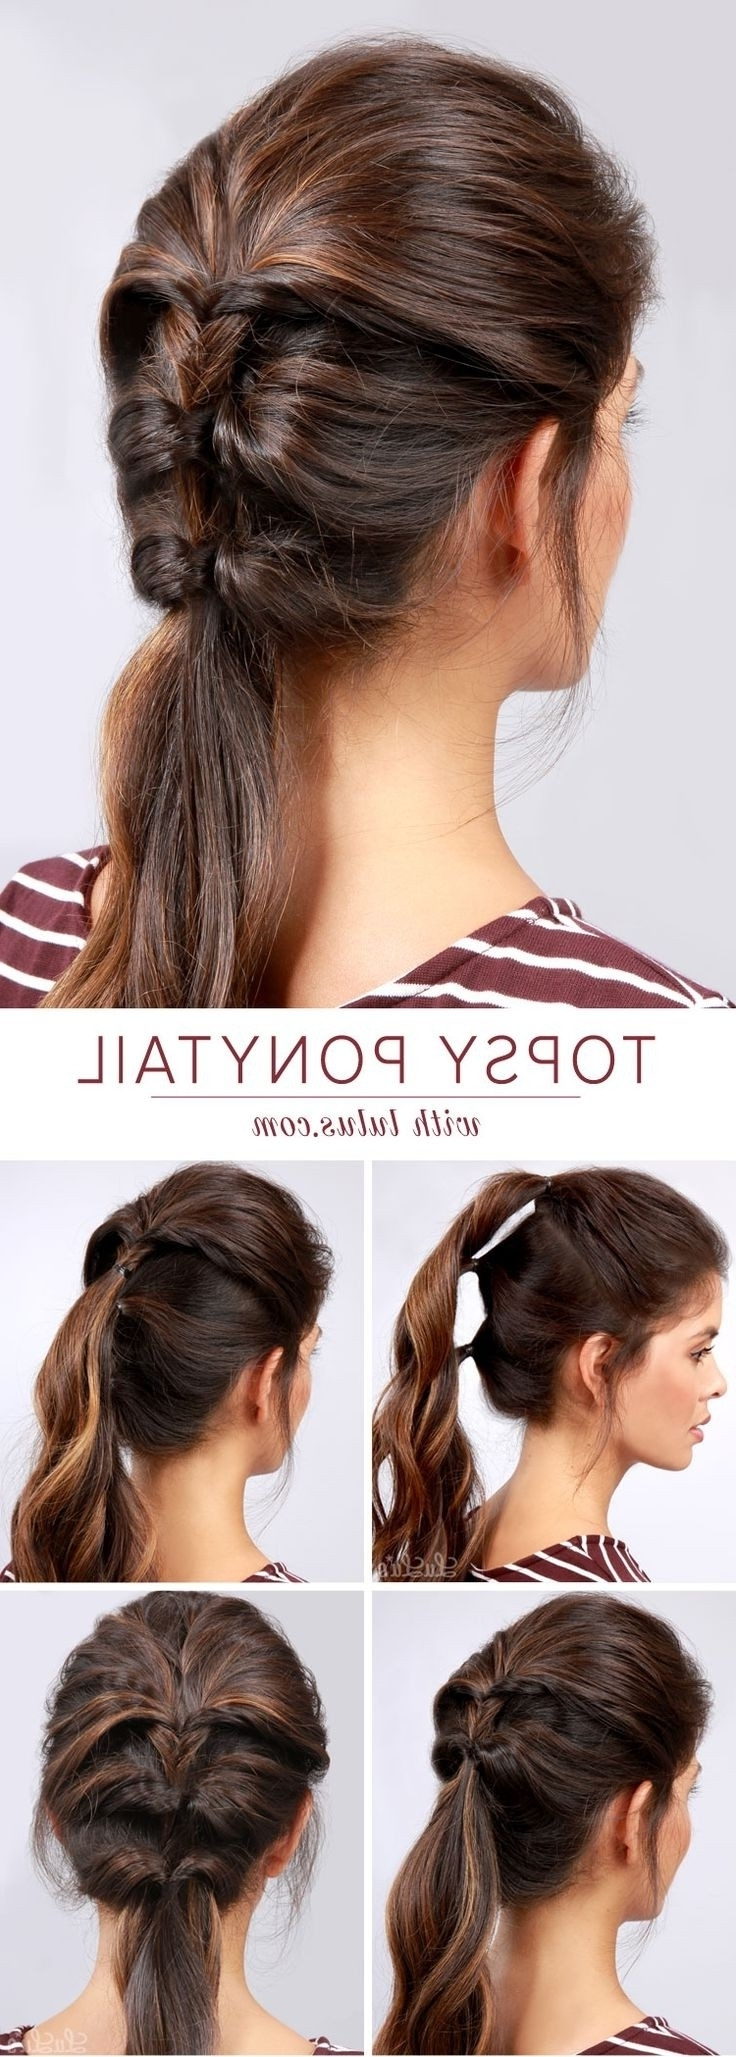 22 Great Ponytail Hairstyles For Girls – Pretty Designs Regarding Most Recent Chic High Ponytail Hairstyles With A Twist (View 1 of 20)